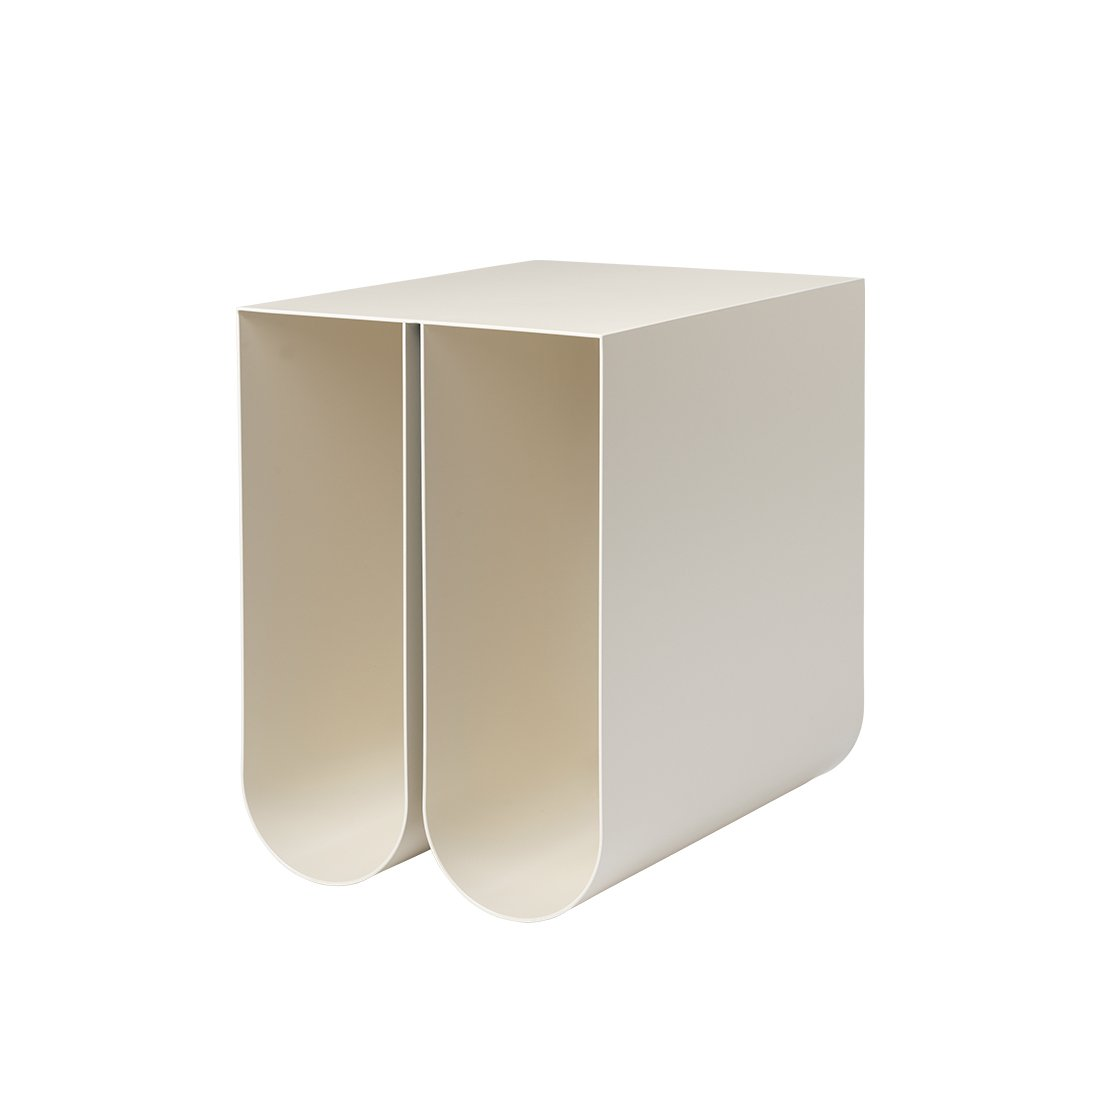 kristina dam studio curved side table sidebord beige